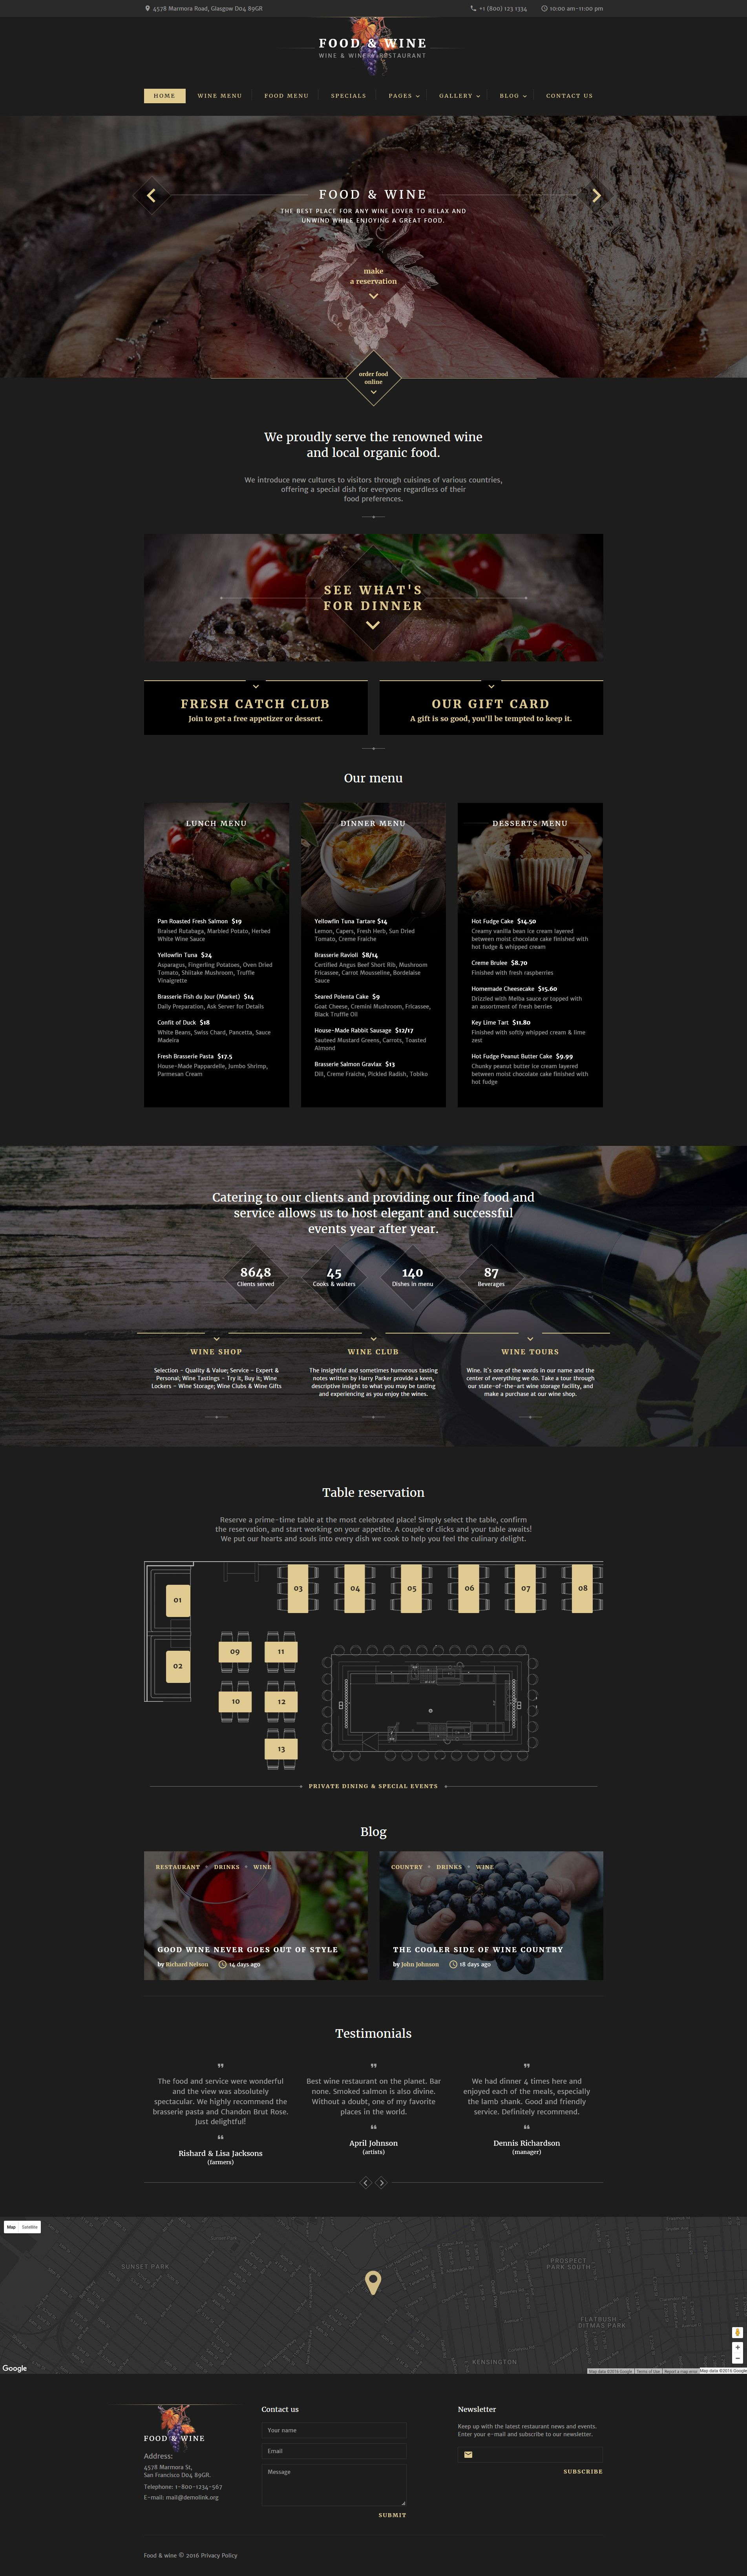 Food Wine Website Template | Template and Website themes